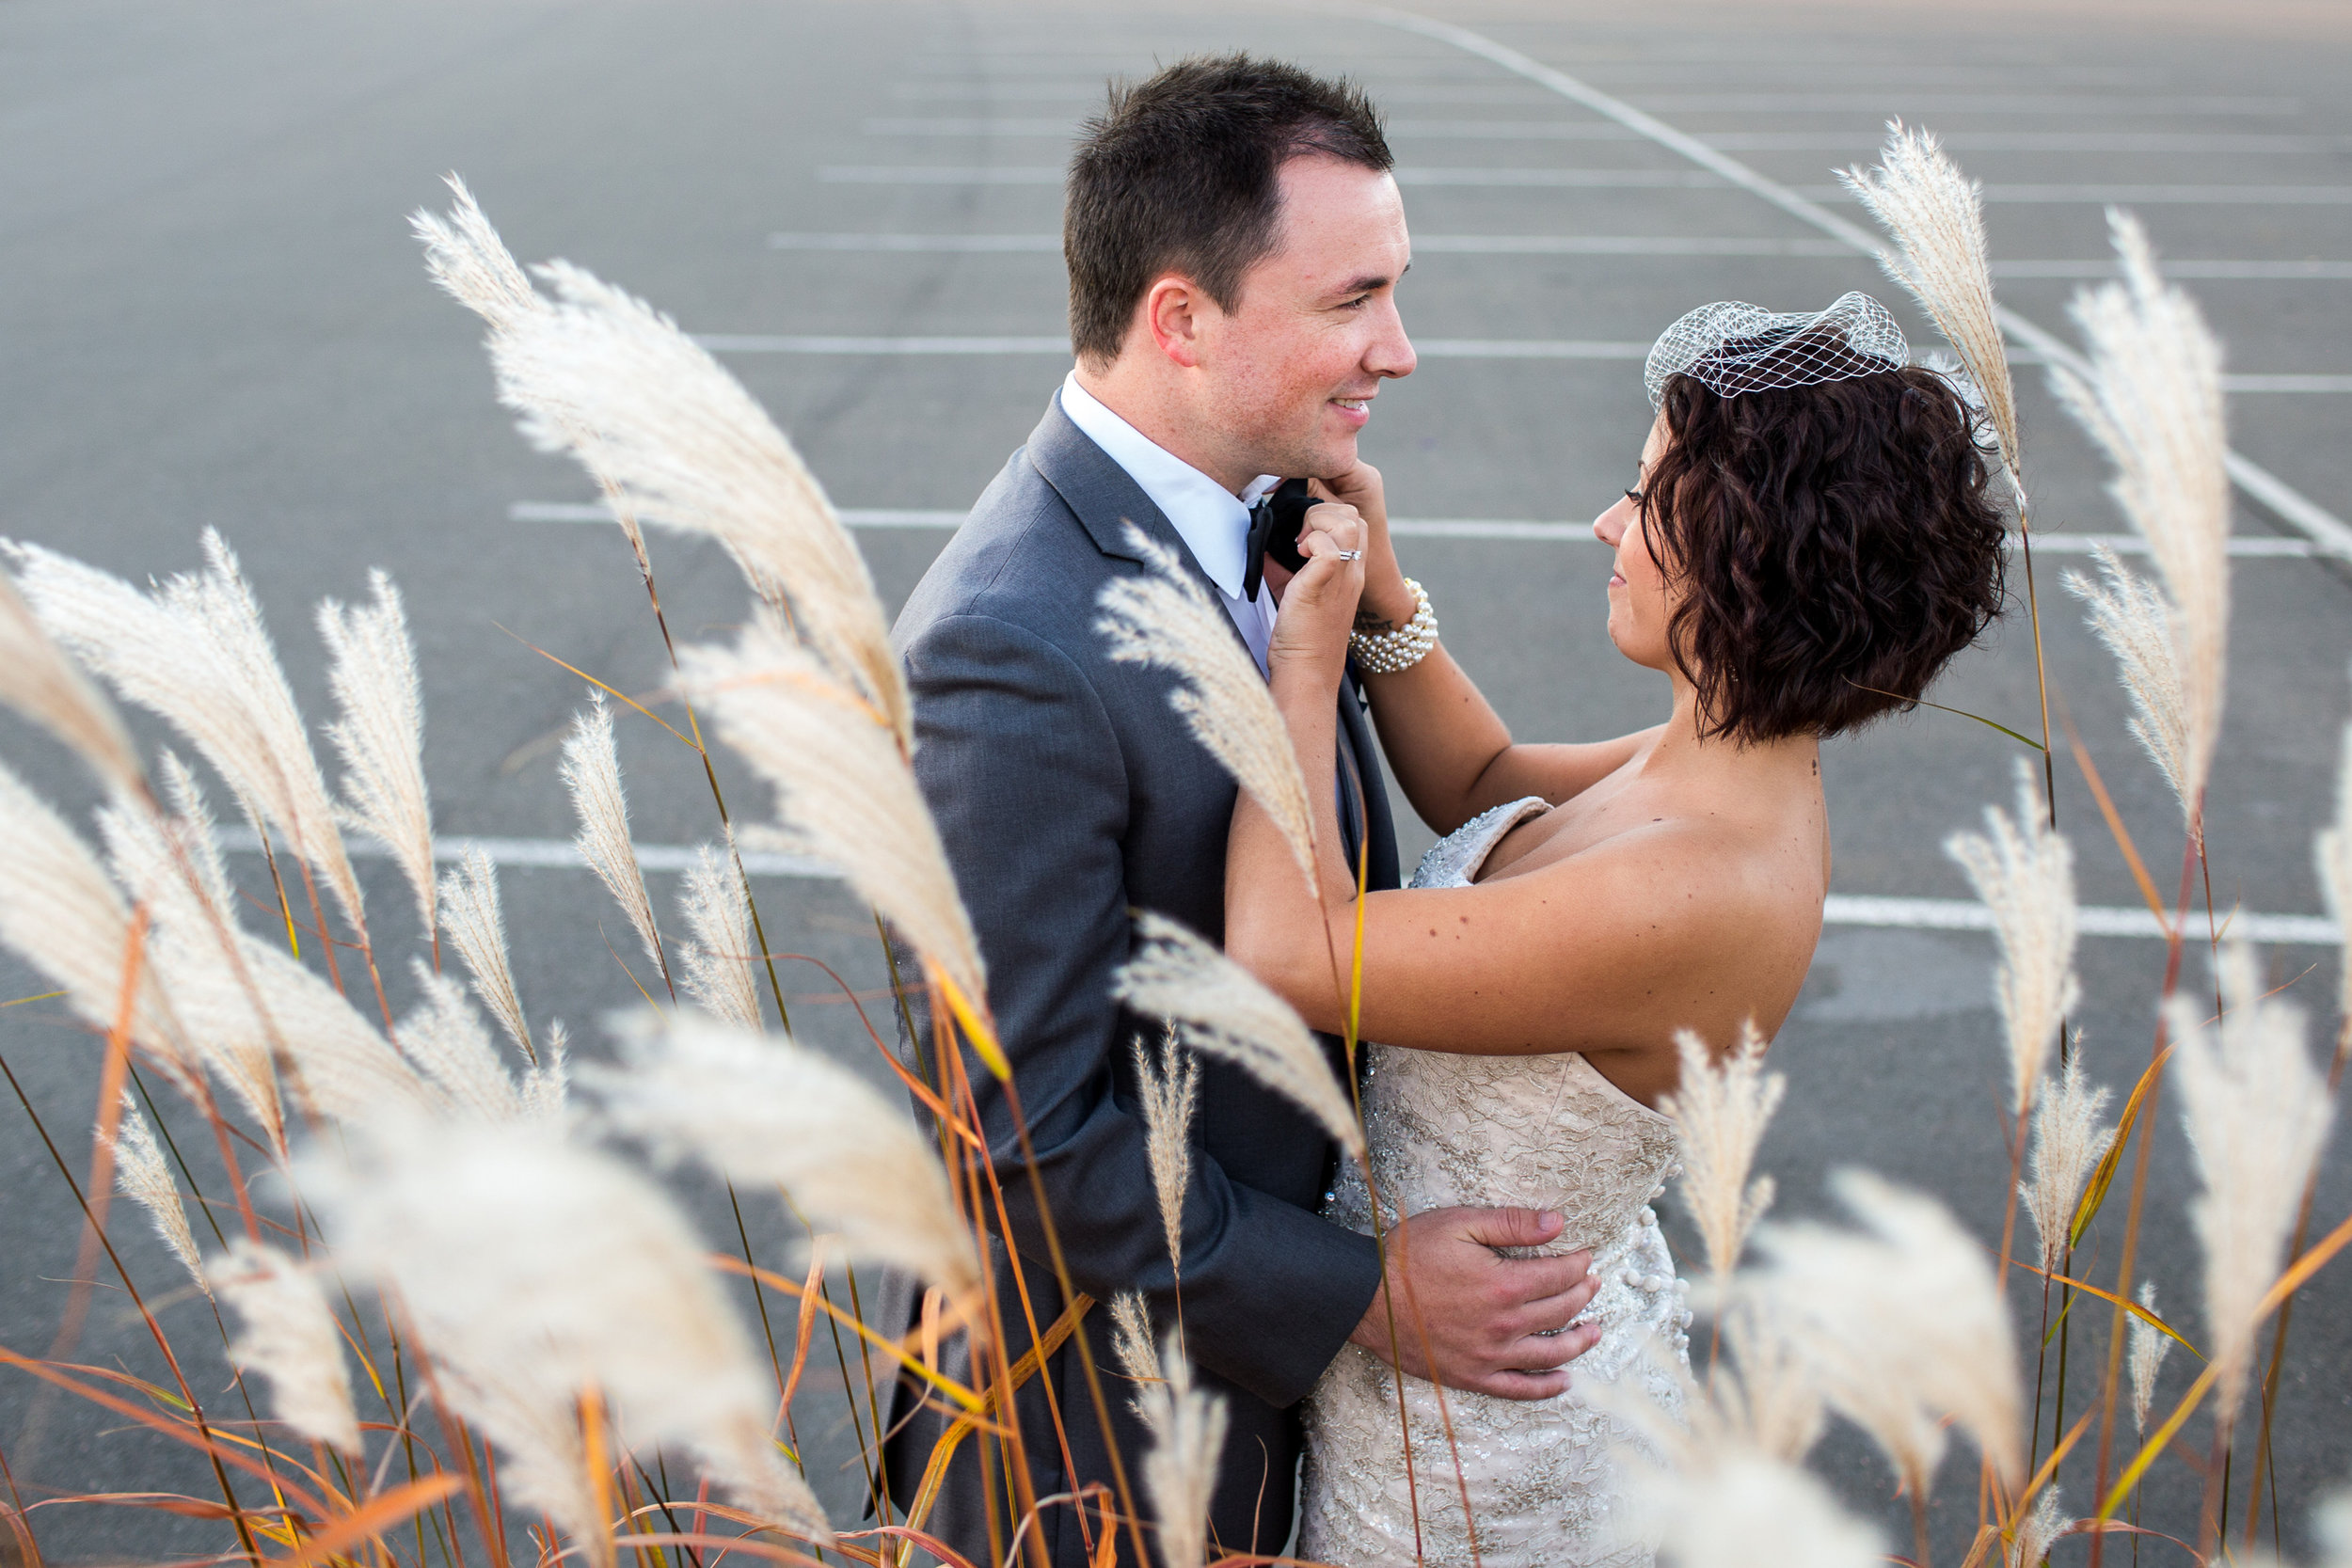 moncton_wedding_photographer_caro_photo-60.jpg